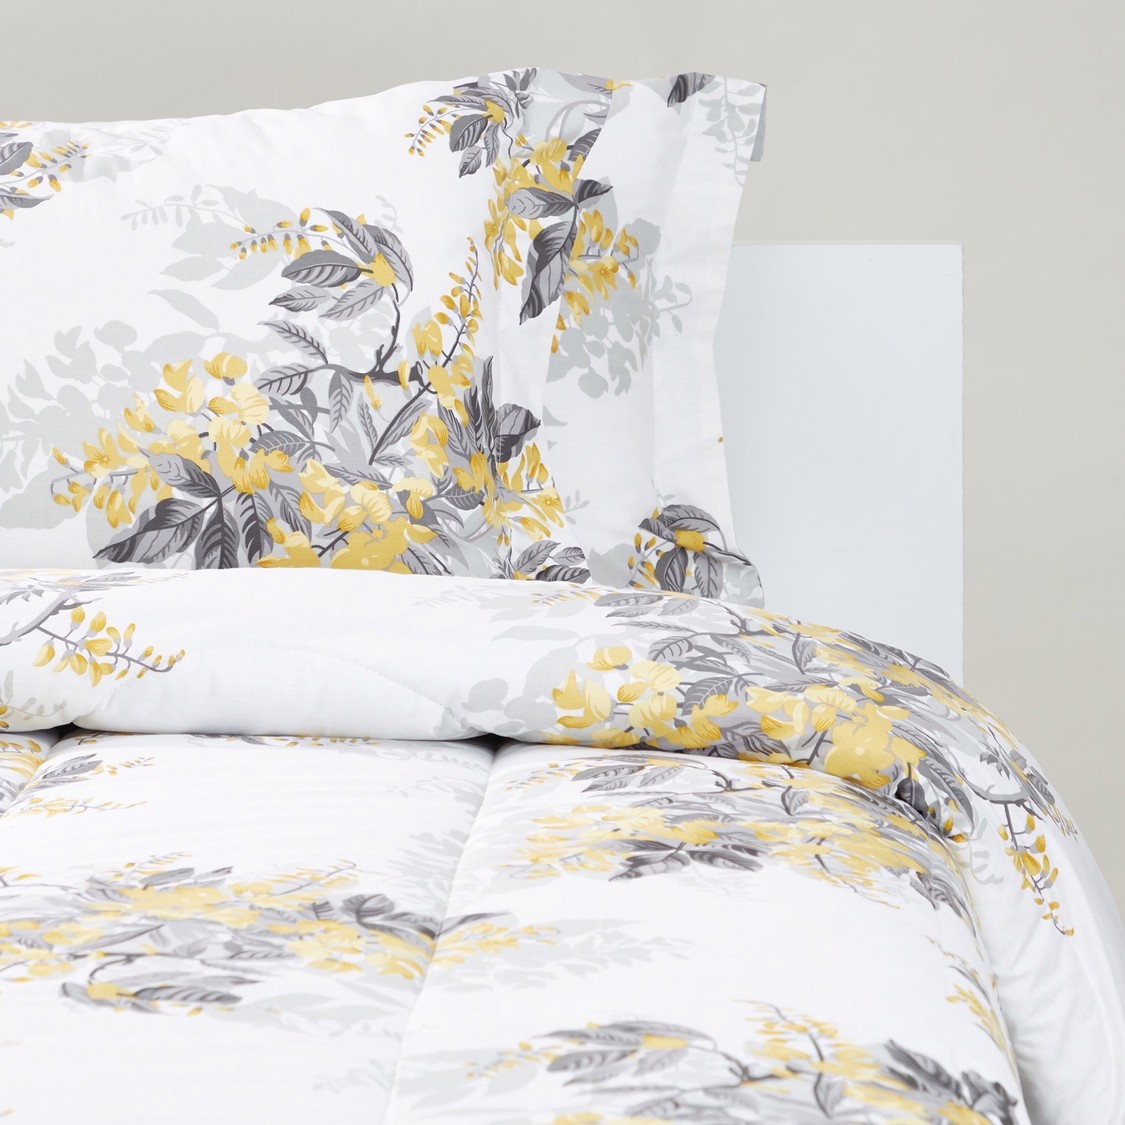 All-Over Floral Print 3-Piece Comforter Set - 230x220 cms